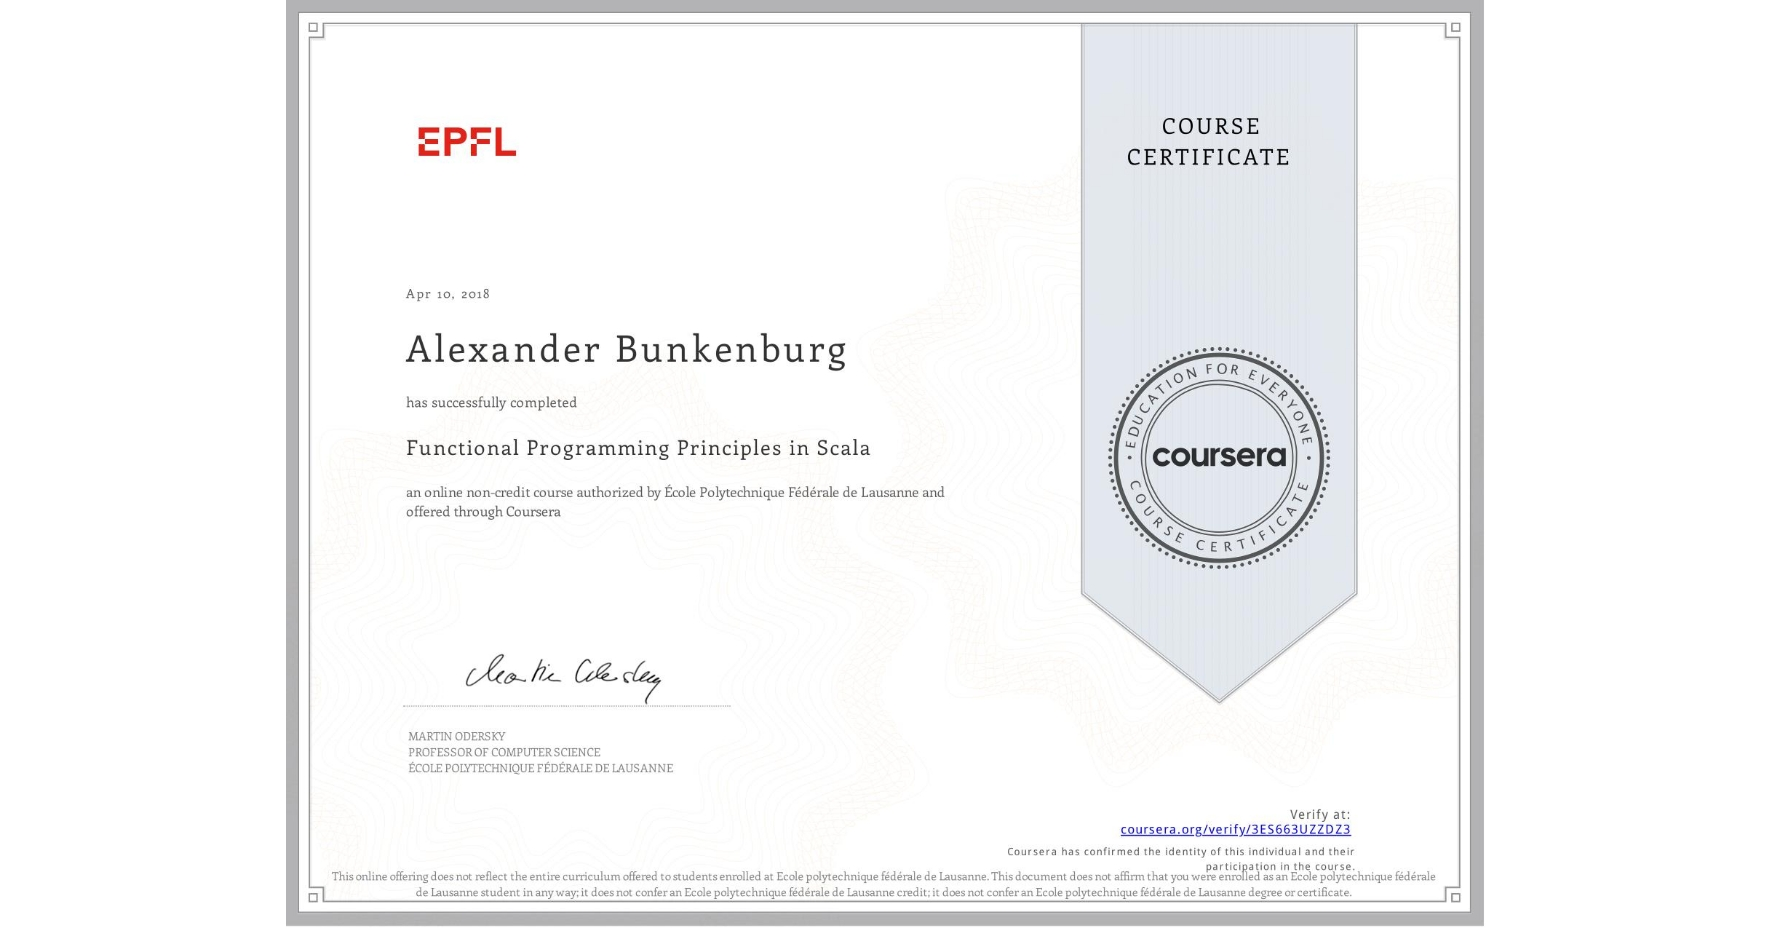 View certificate for Alexander Bunkenburg, Functional Programming Principles in Scala, an online non-credit course authorized by École Polytechnique Fédérale de Lausanne and offered through Coursera